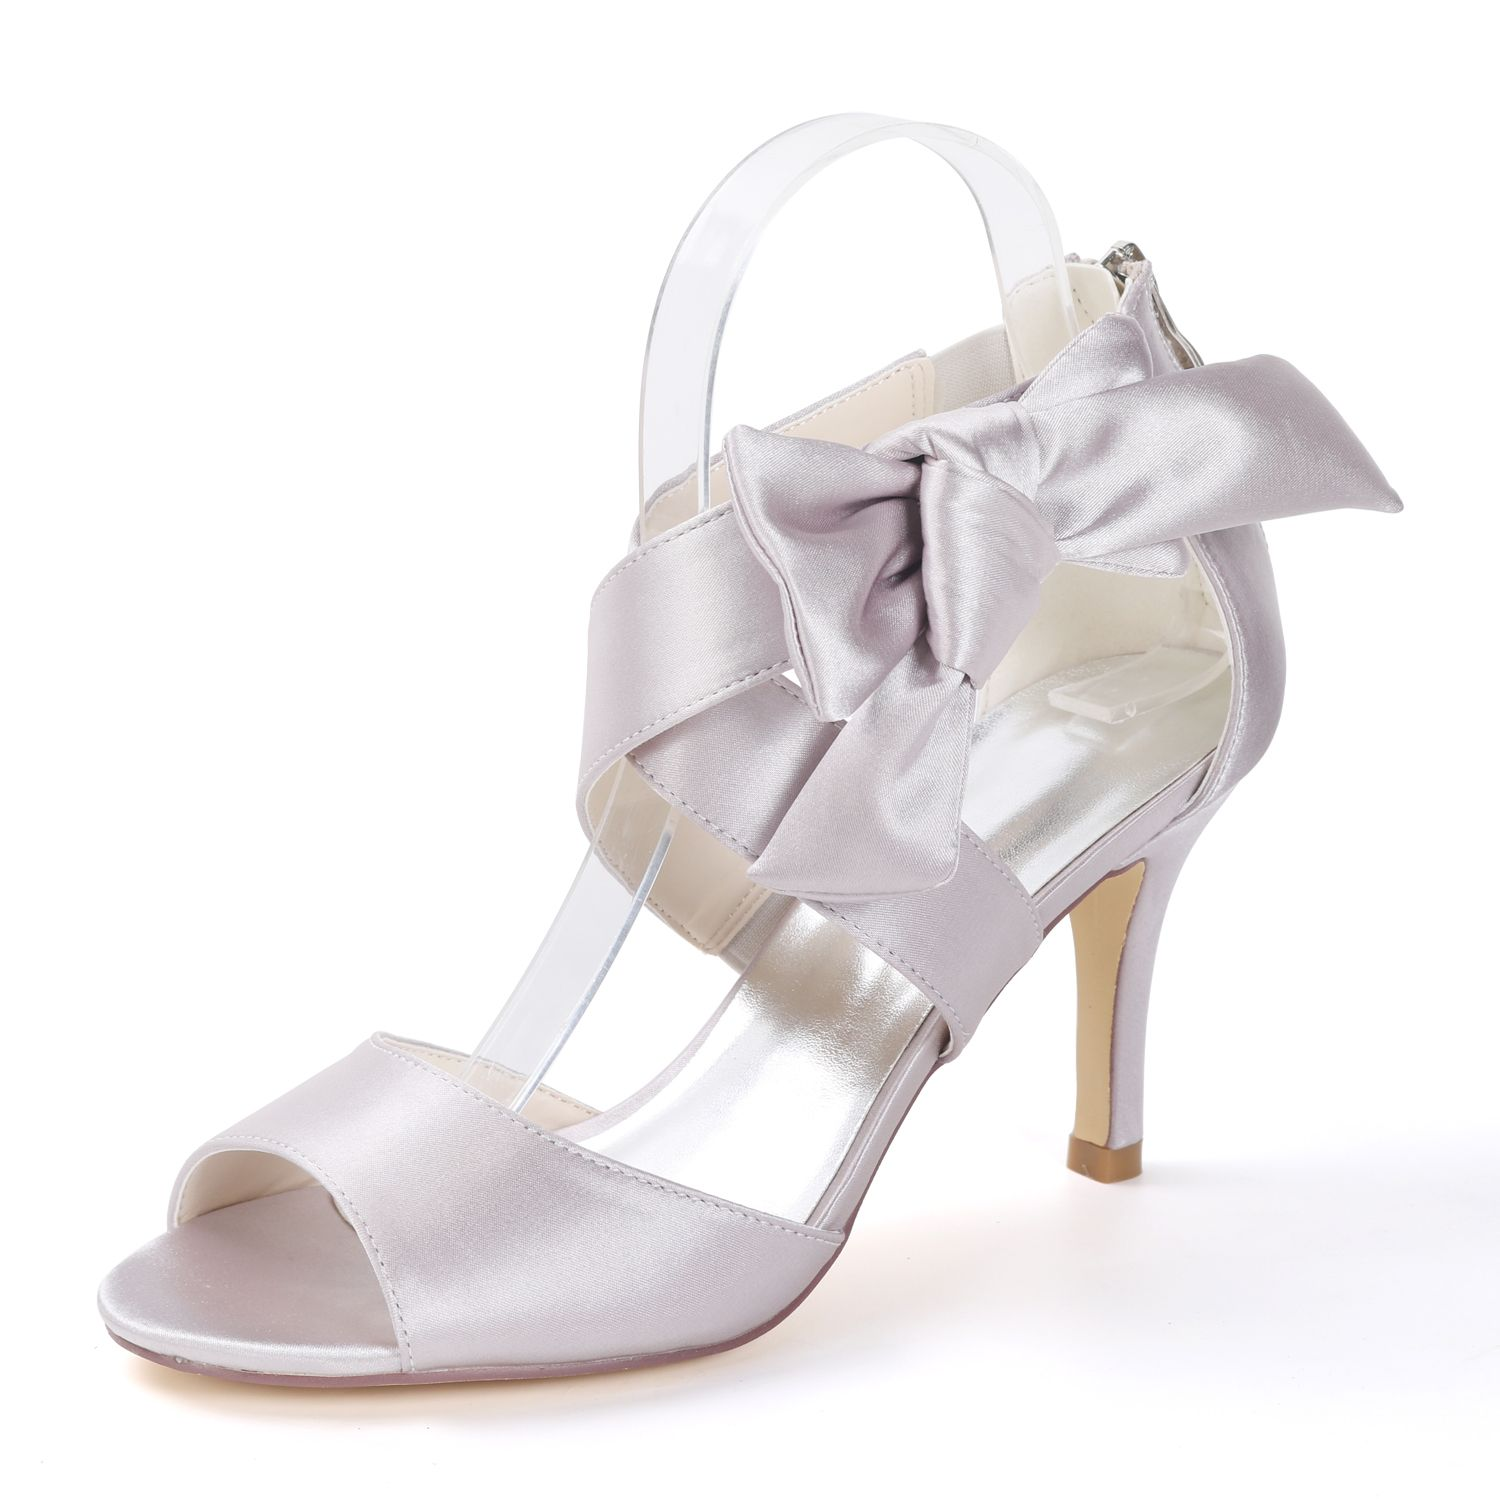 Inches Heel Satin Dress Sandals With Sweet On Ankle Severdal Colors Available